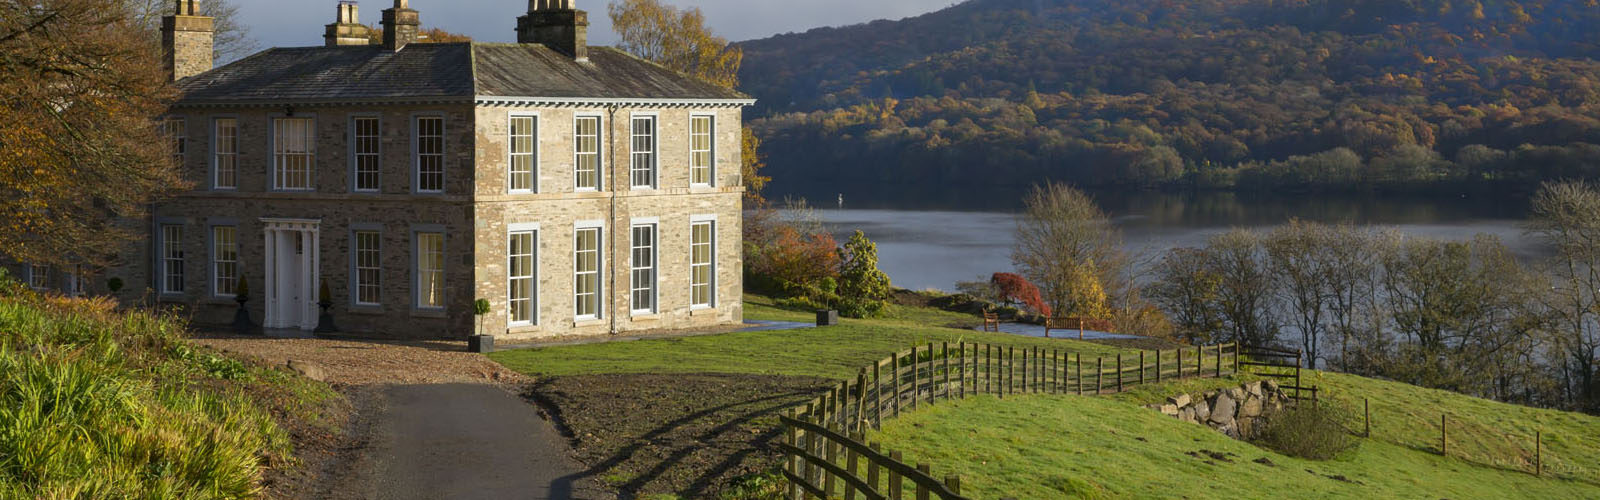 Large holiday cottage by a lake.